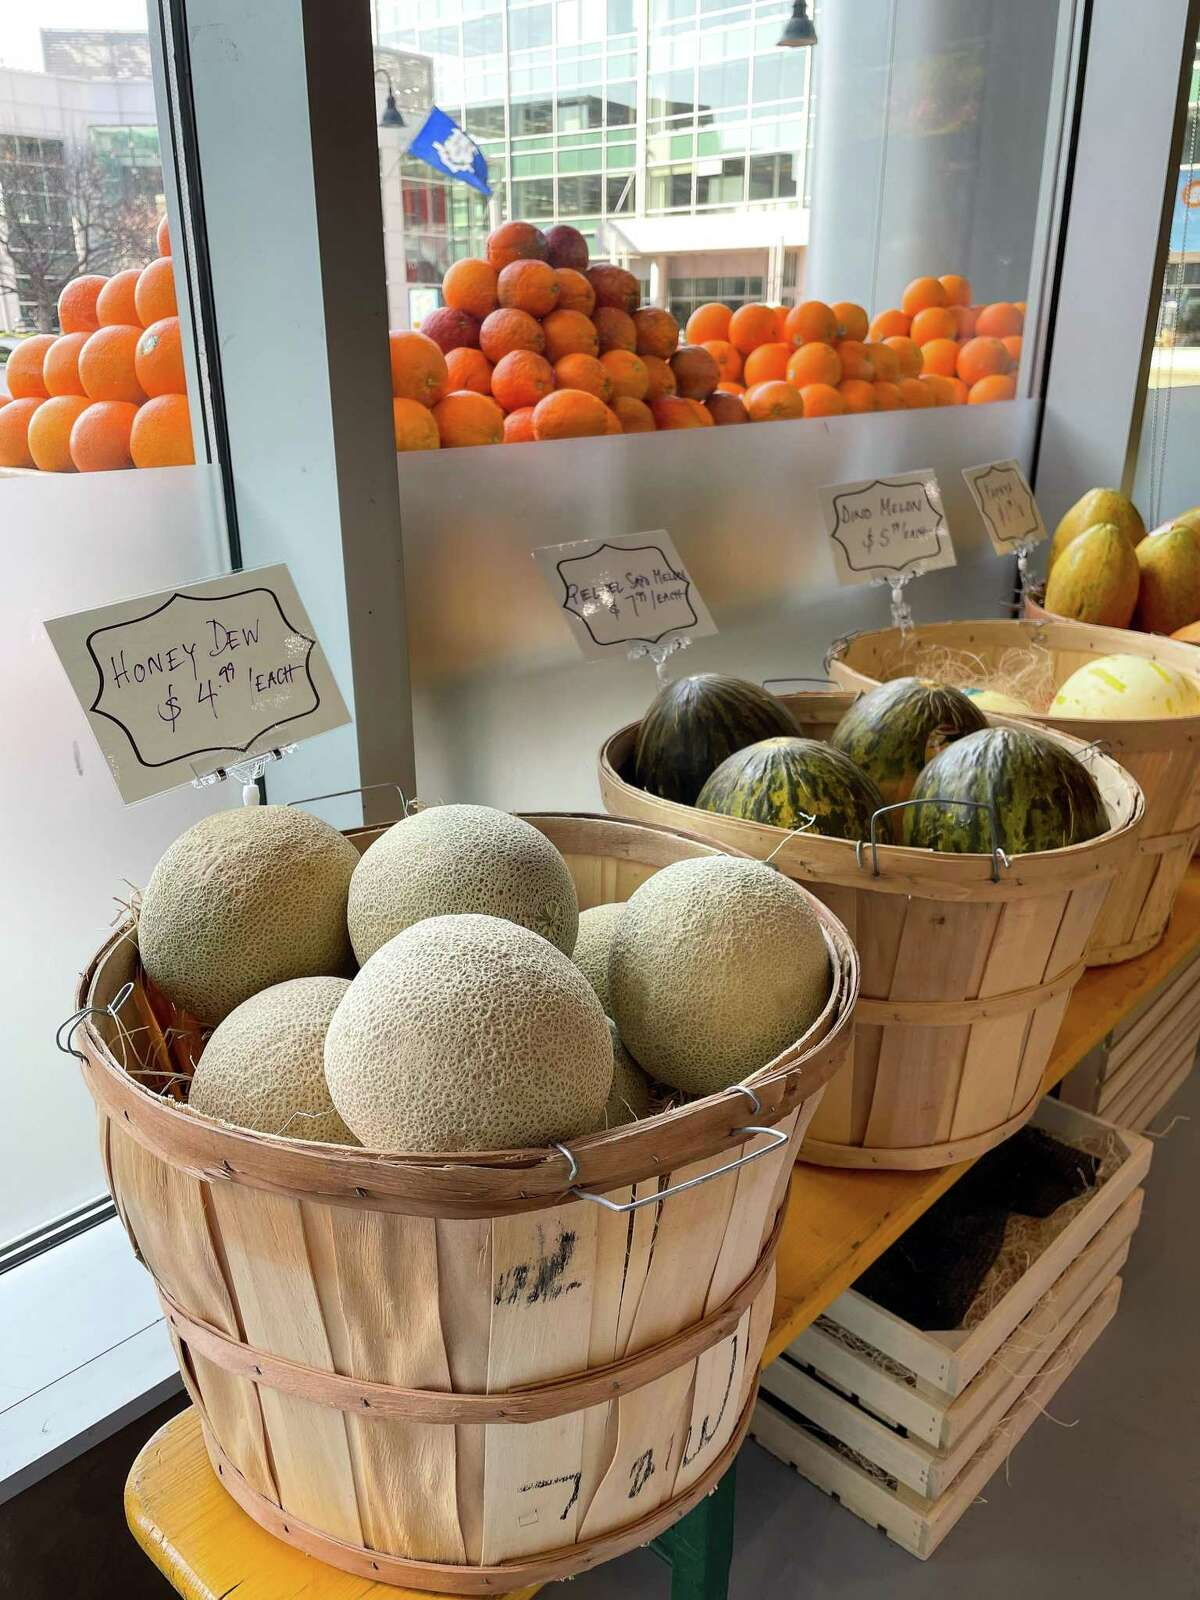 Harbor Point Organics, in Stamford's Harbor Point development, opened March 10 with a wide variety of organic grocery options, a specialty juice and smoothie bar, grab-and-go prepared foods, rotisserie chicken, organic coffee, baked goods, artisan cheeses, cut flowers and vegan and grain-free options.